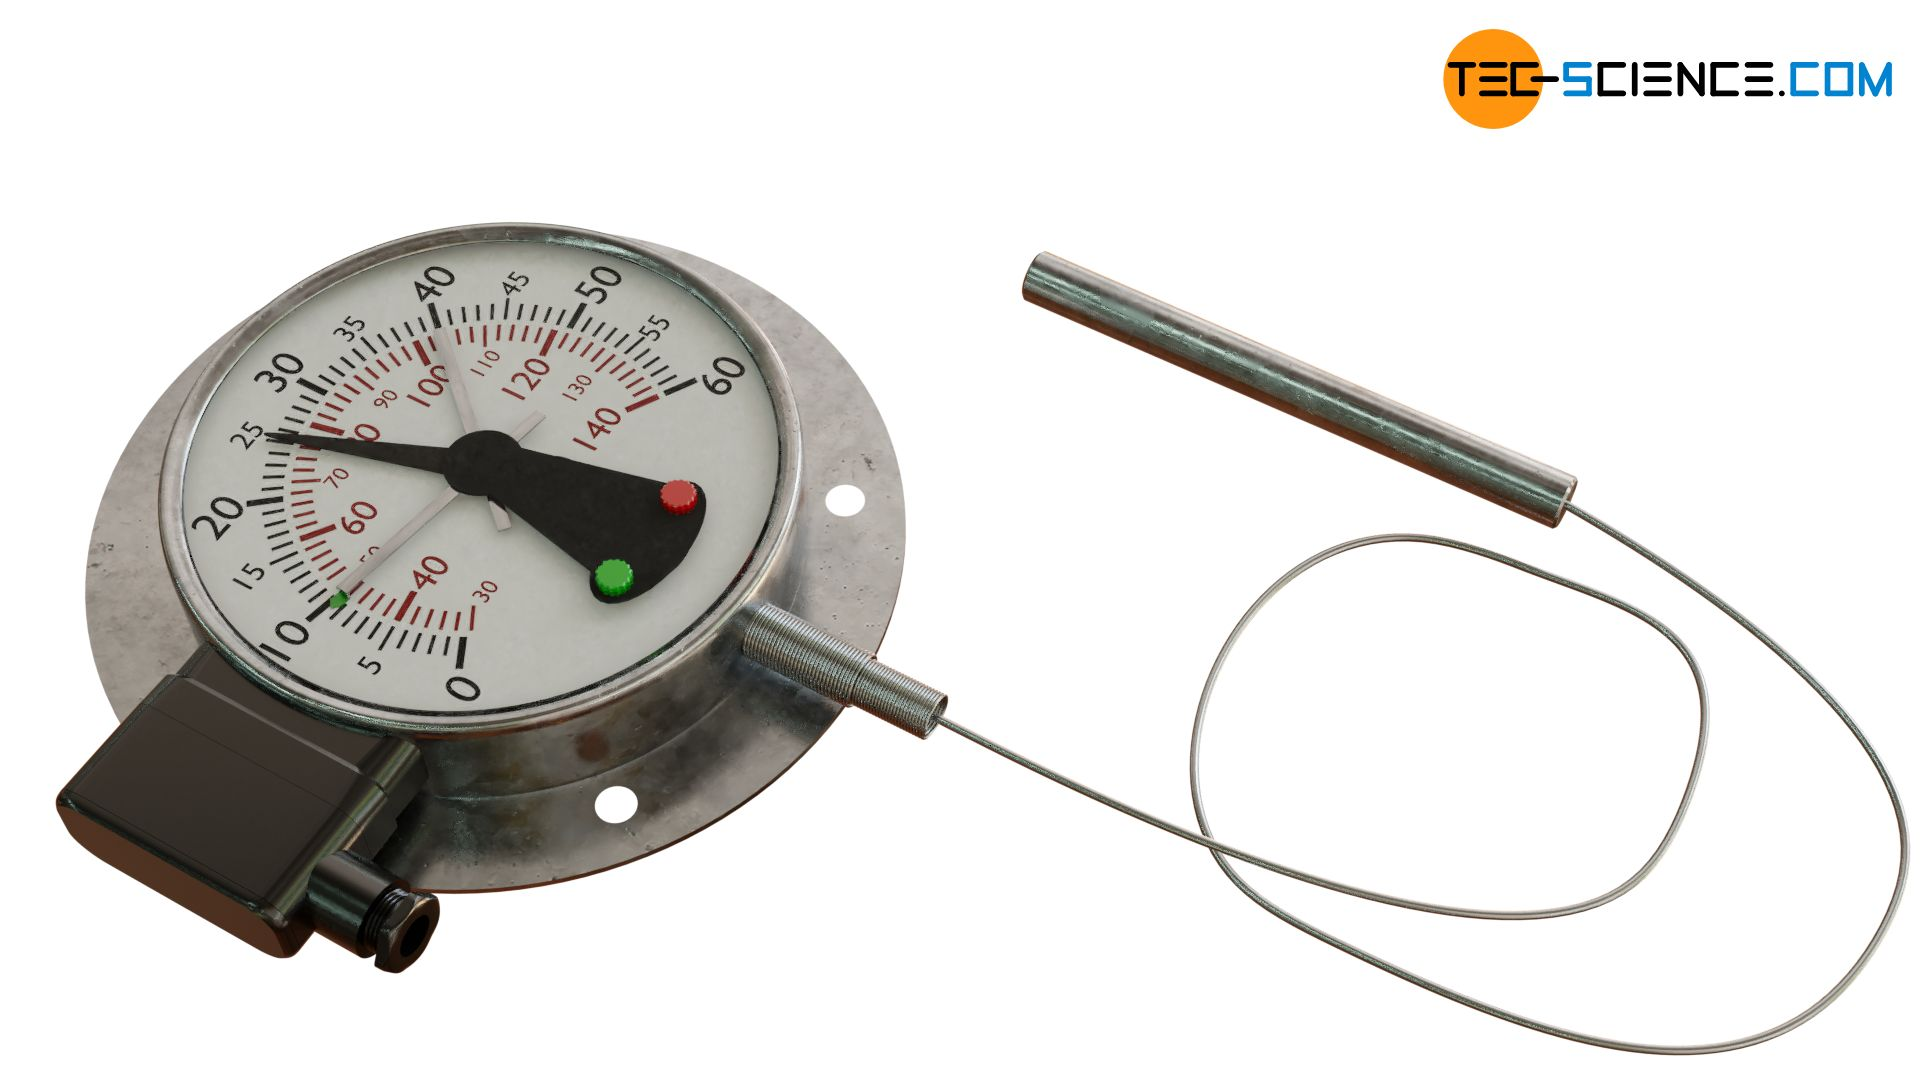 Liquid filled thermometer with switch contact